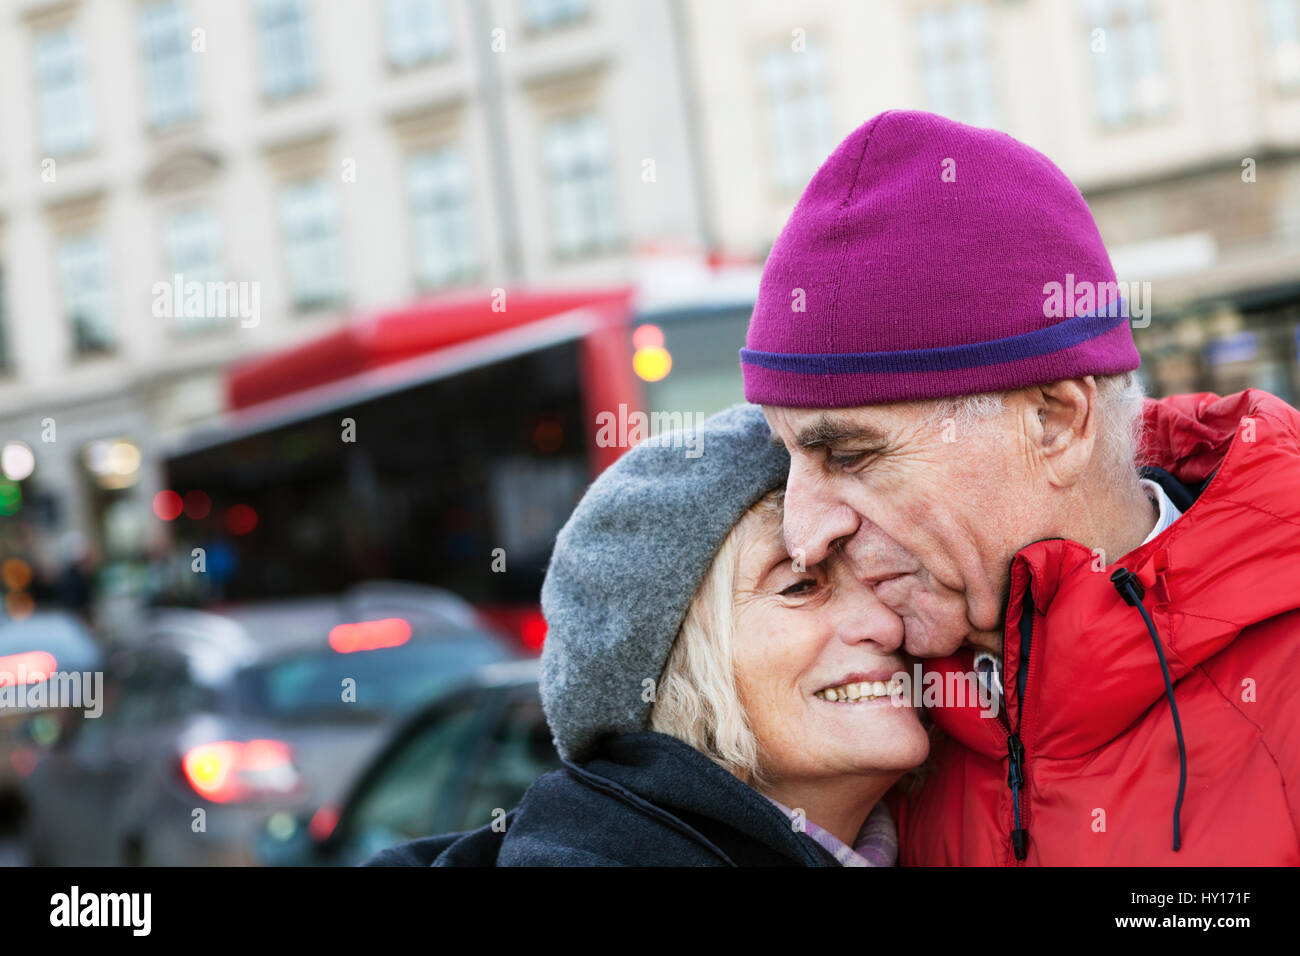 Sweden, Stockholm, Sodermalm, Senior couple hugging in street - Stock Image